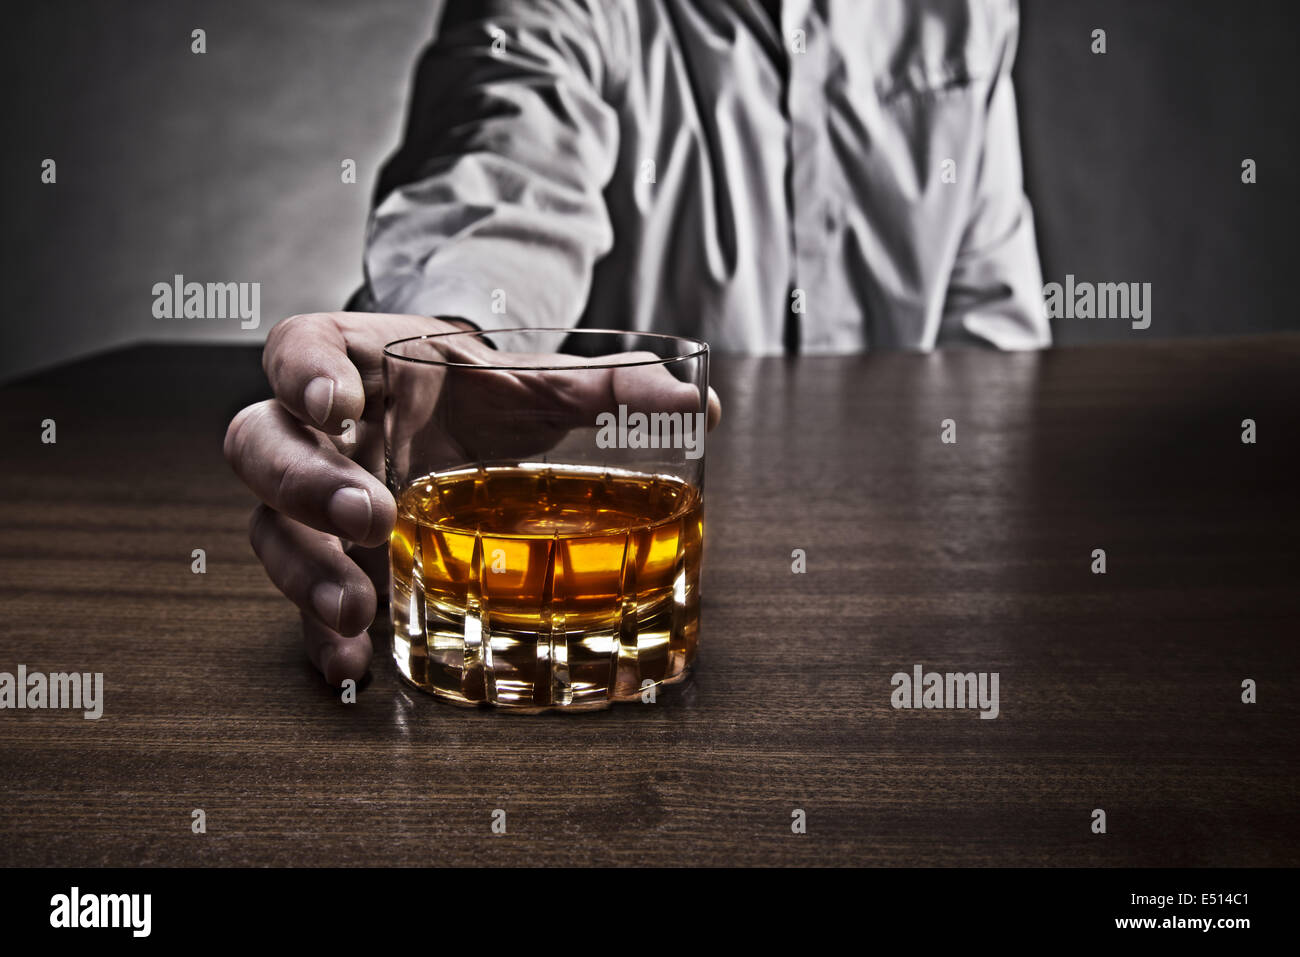 Man grabs a glass of whiskey - Stock Image